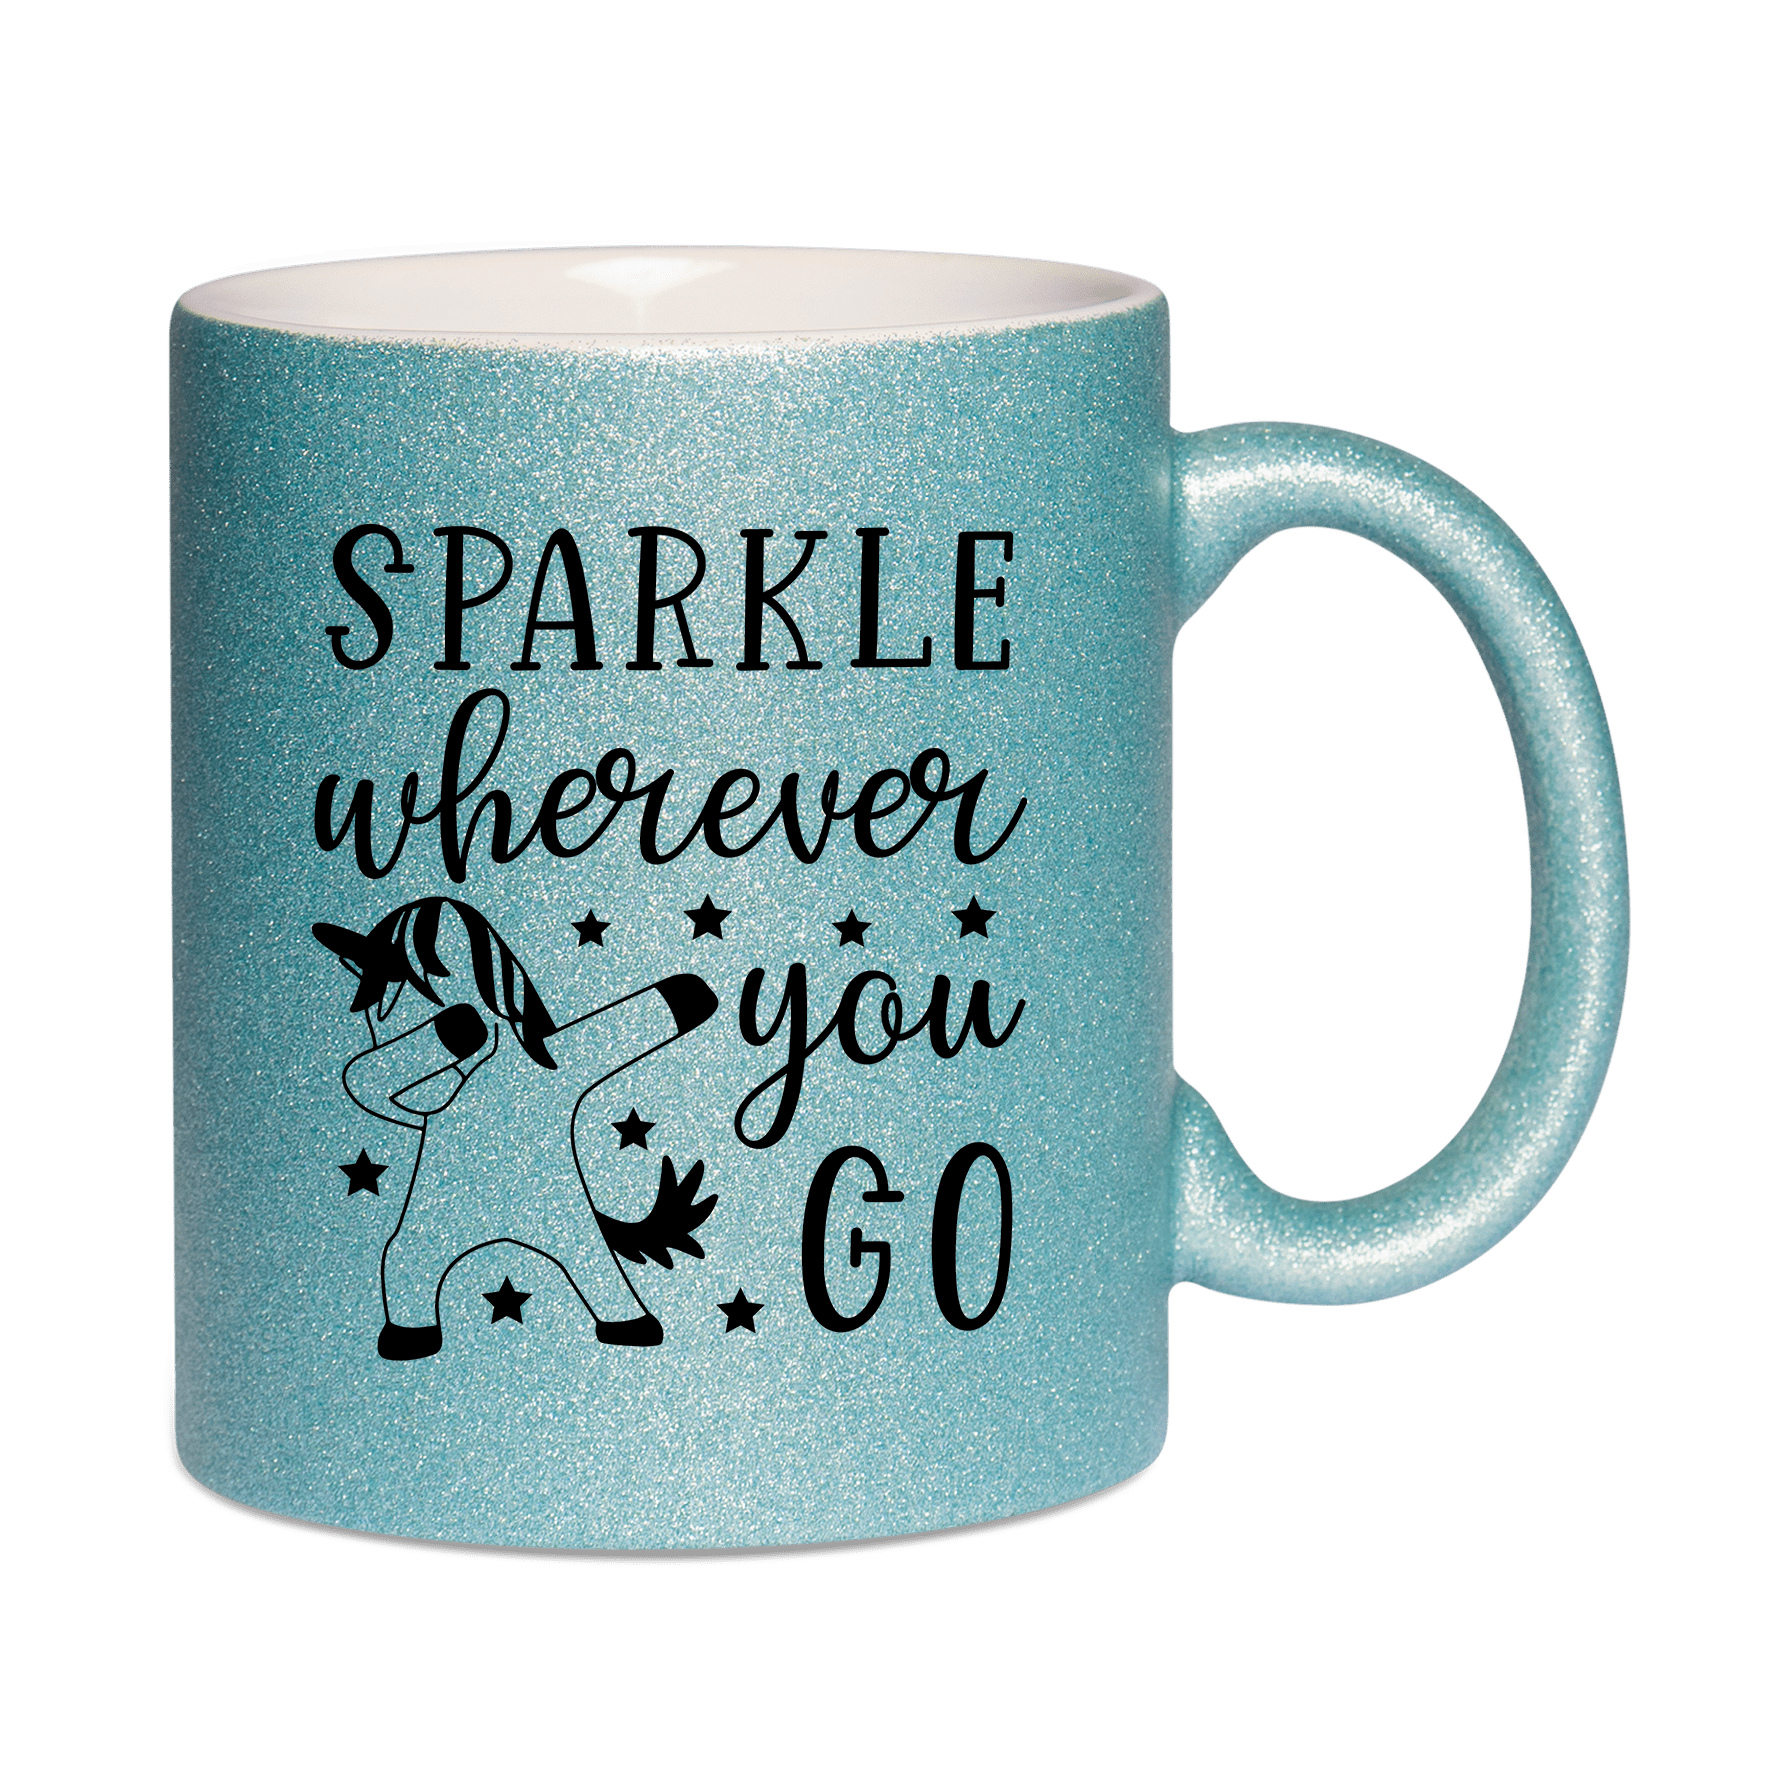 Sparkle where ever you go